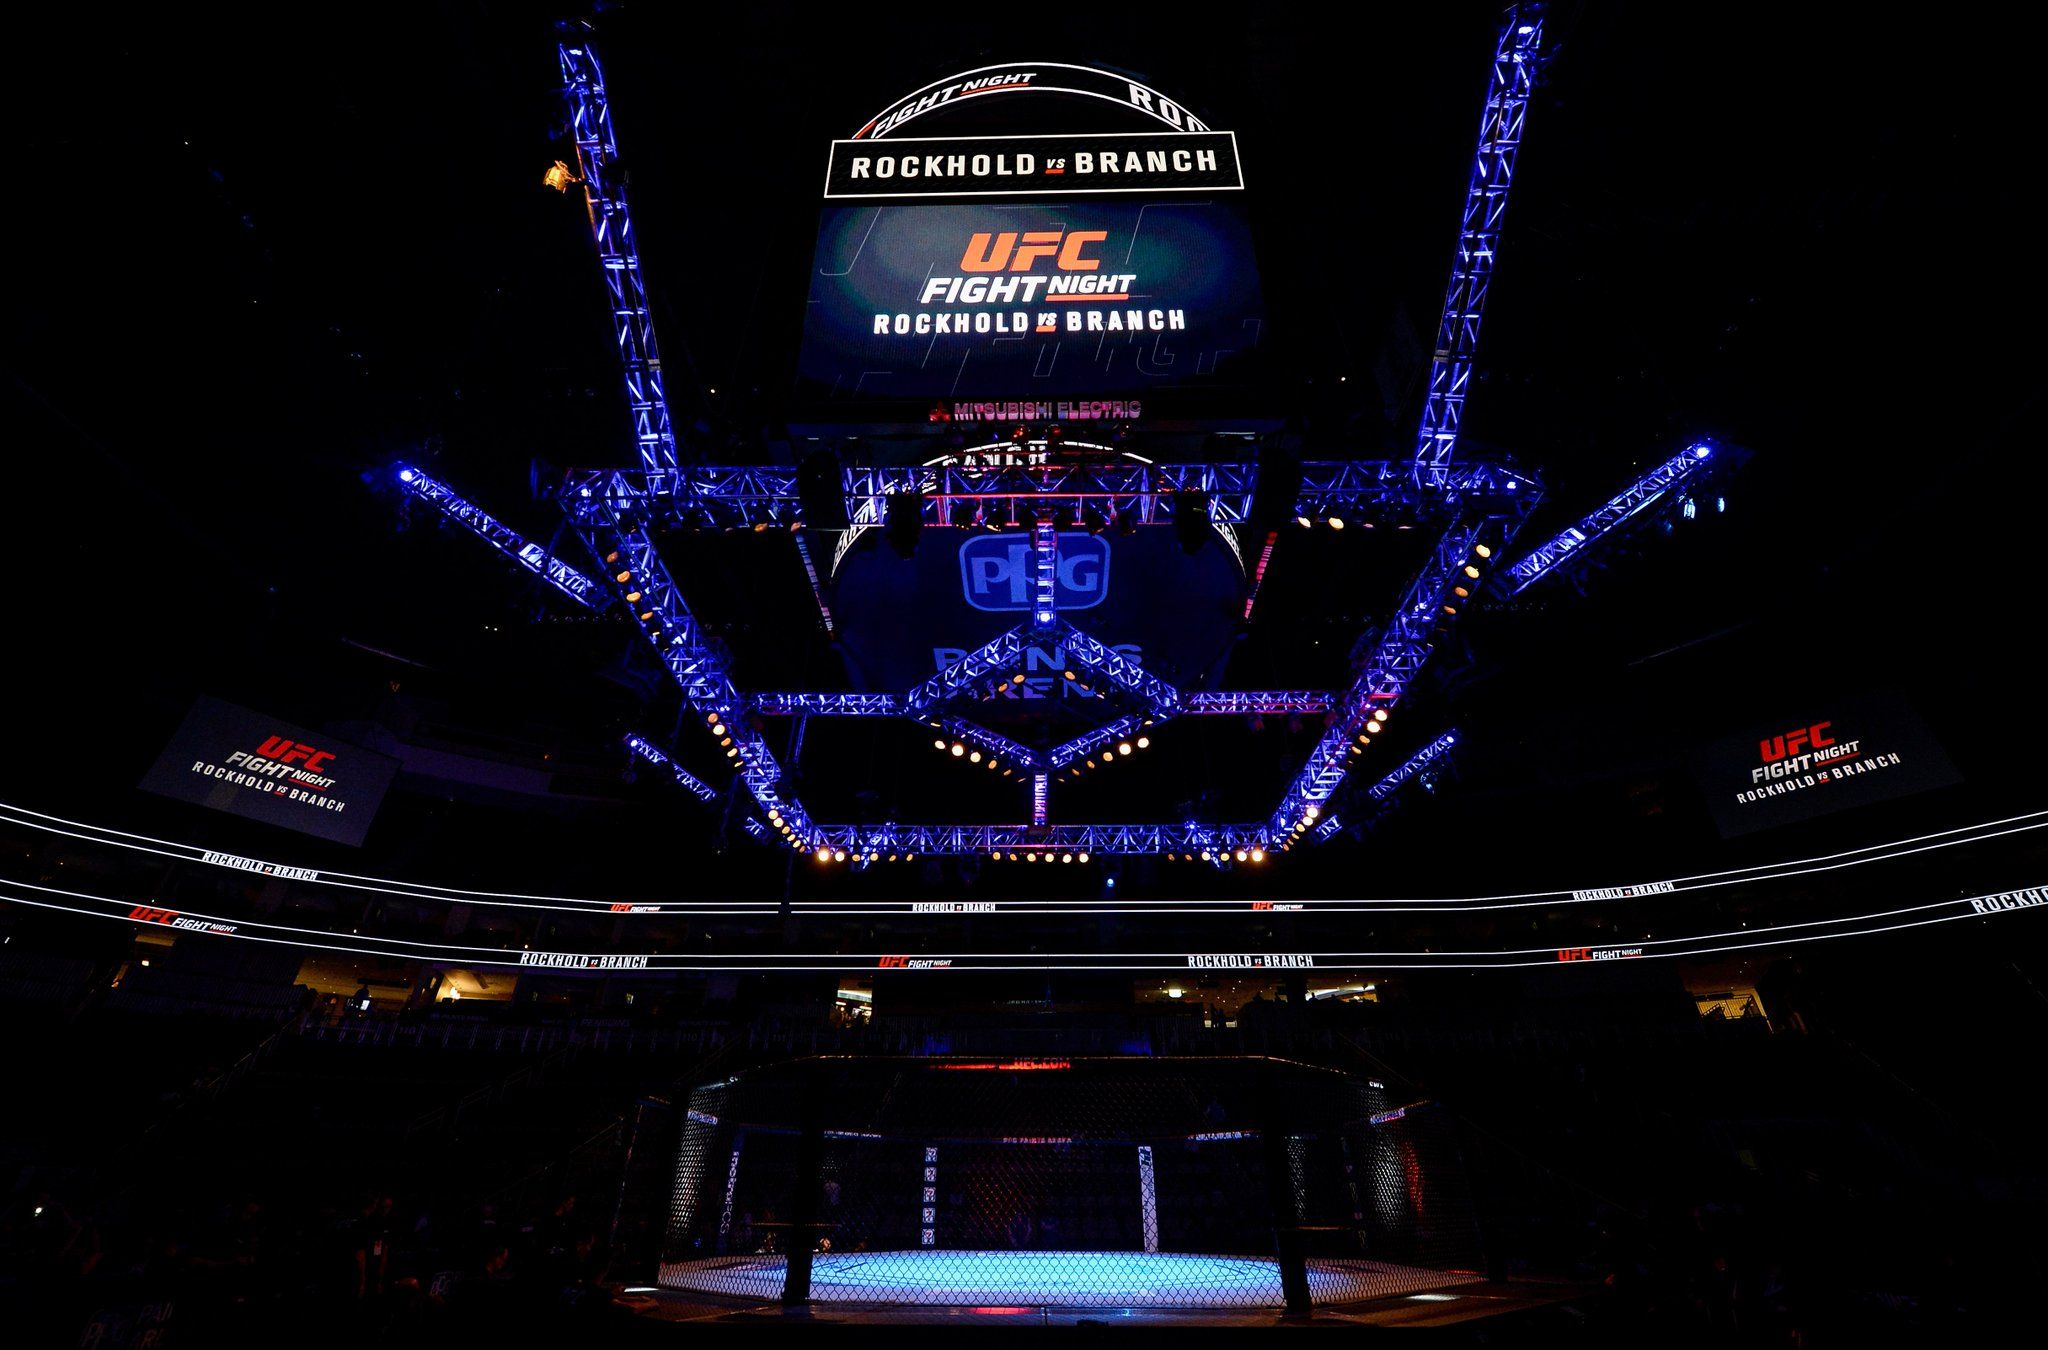 �� �� ��  What a sight to see!  #UFCPittsburgh gets underway on @FS1 at 8pmET/5pmPT!! https://t.co/4LIABAsmMC